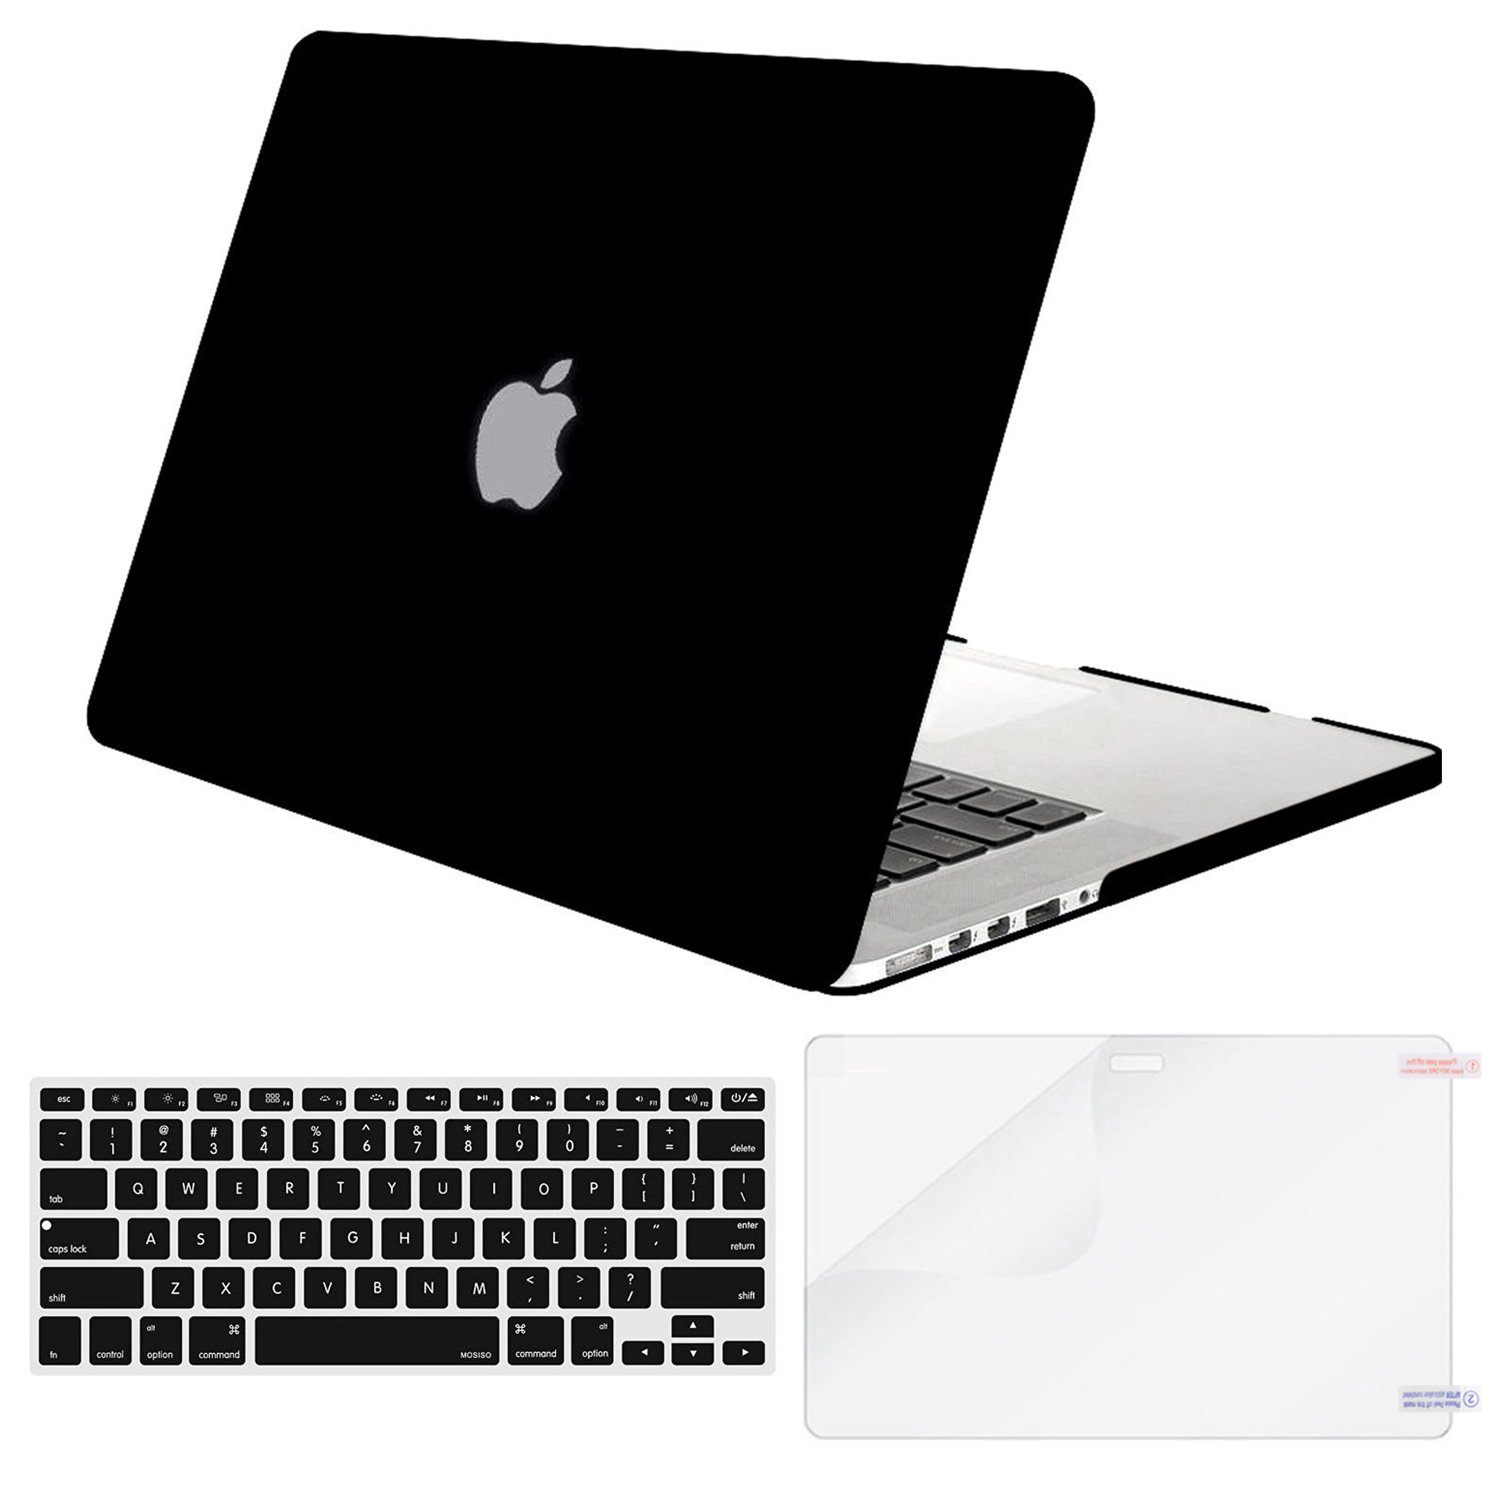 MOSISO Plastic Hard Case with Keyboard Cover with Screen Protector Only Compatible MacBook Pro Retina 13 inch No CD-ROM (A1502/A1425, Version 2015/2014/2013/end 2012), Black